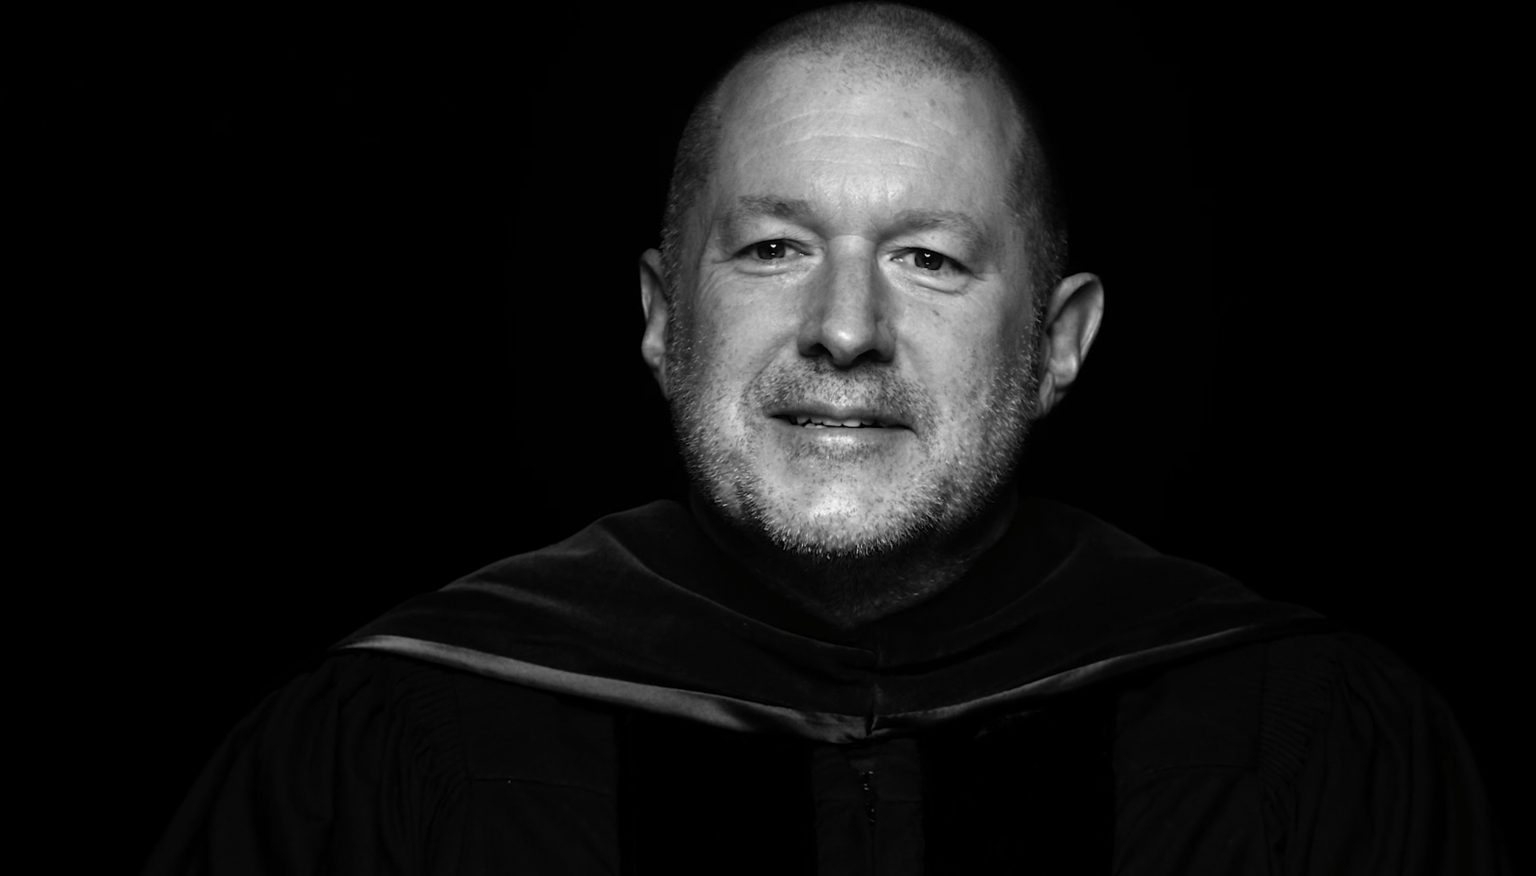 Former Apple design chief Jony Ive talks up big ideas in his virtual commencement speech.